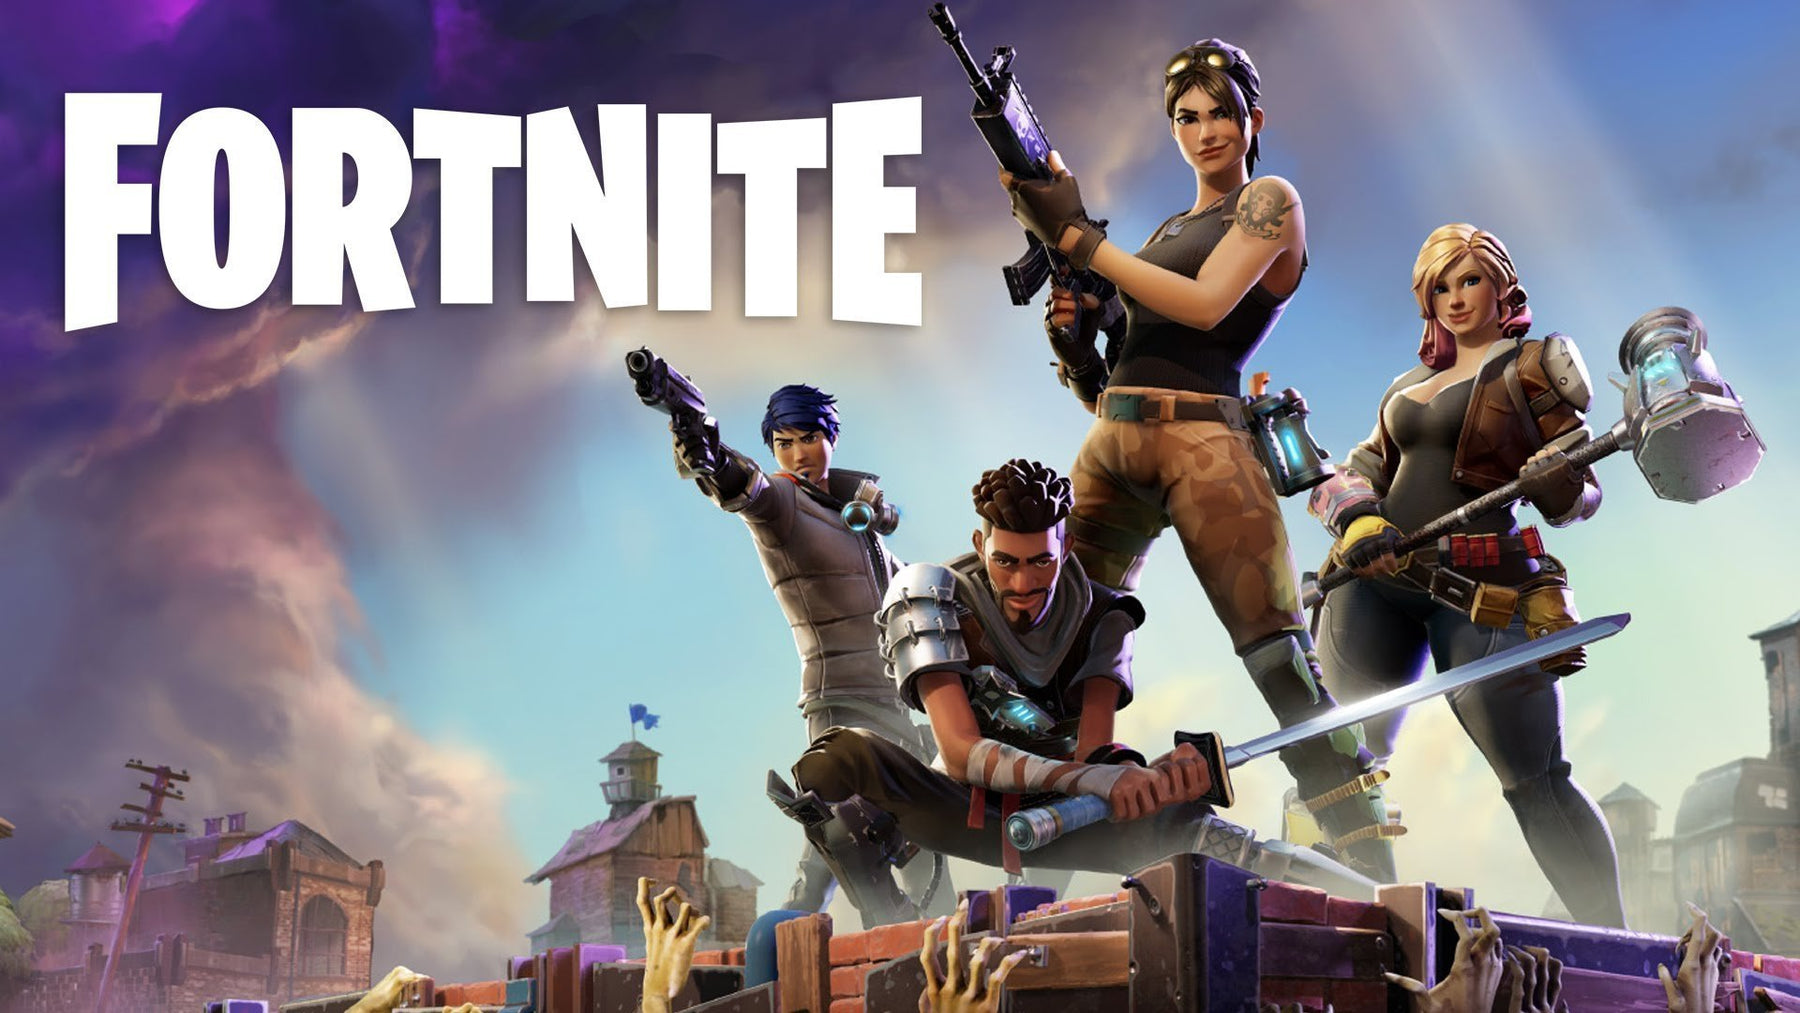 Fortnite Update 3.5 Is Out With New Port-a-Fort, Patch Notes Released